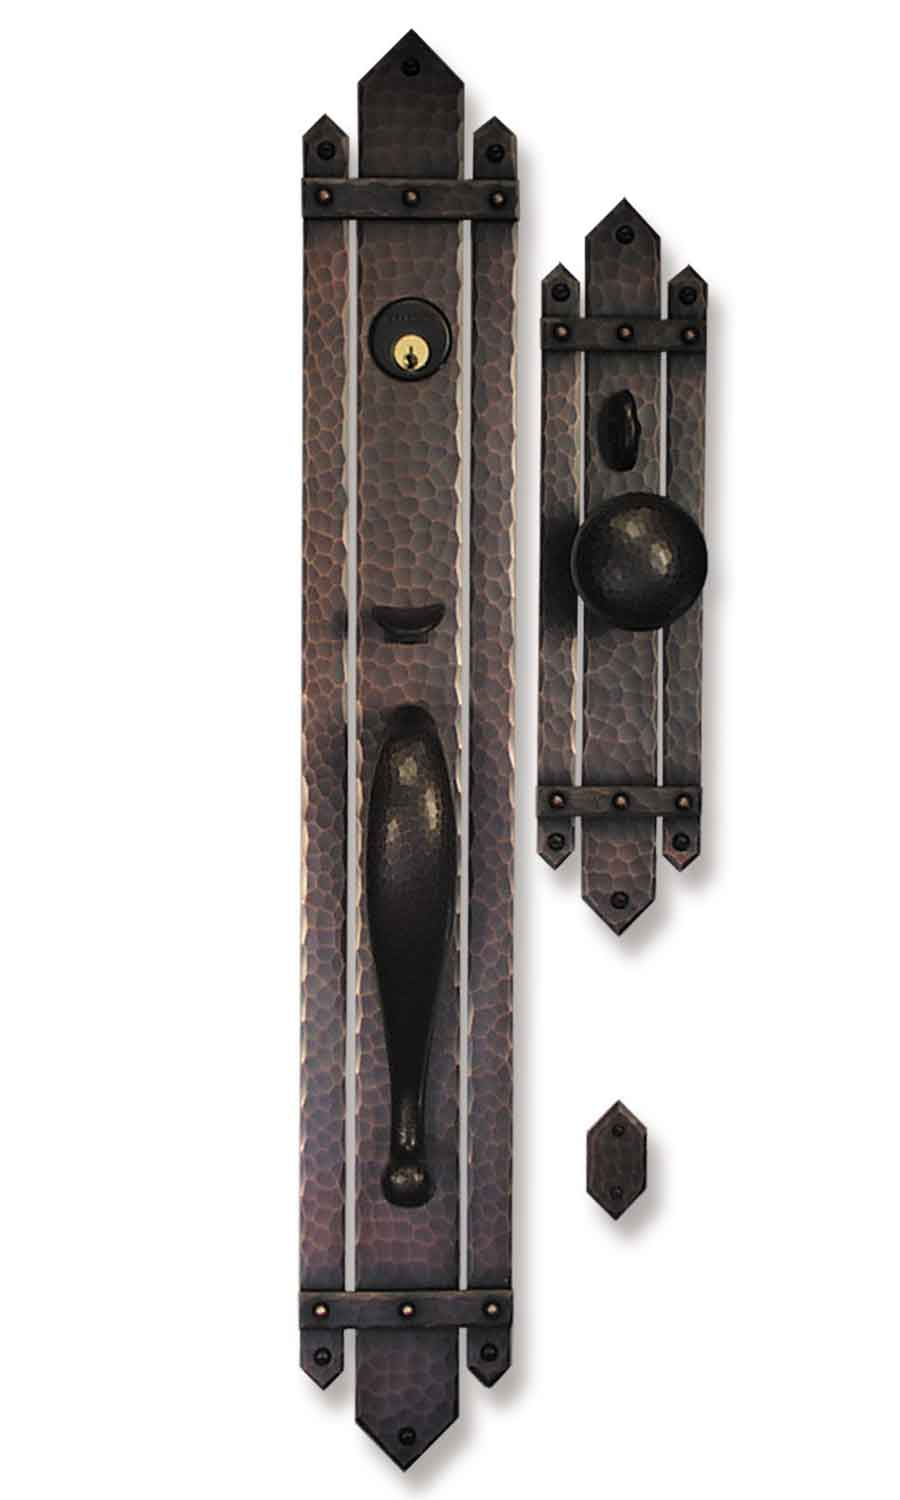 Le Meilleur Hand Crafted Arts And Crafts Craftsman Style Hardware Ce Mois Ci